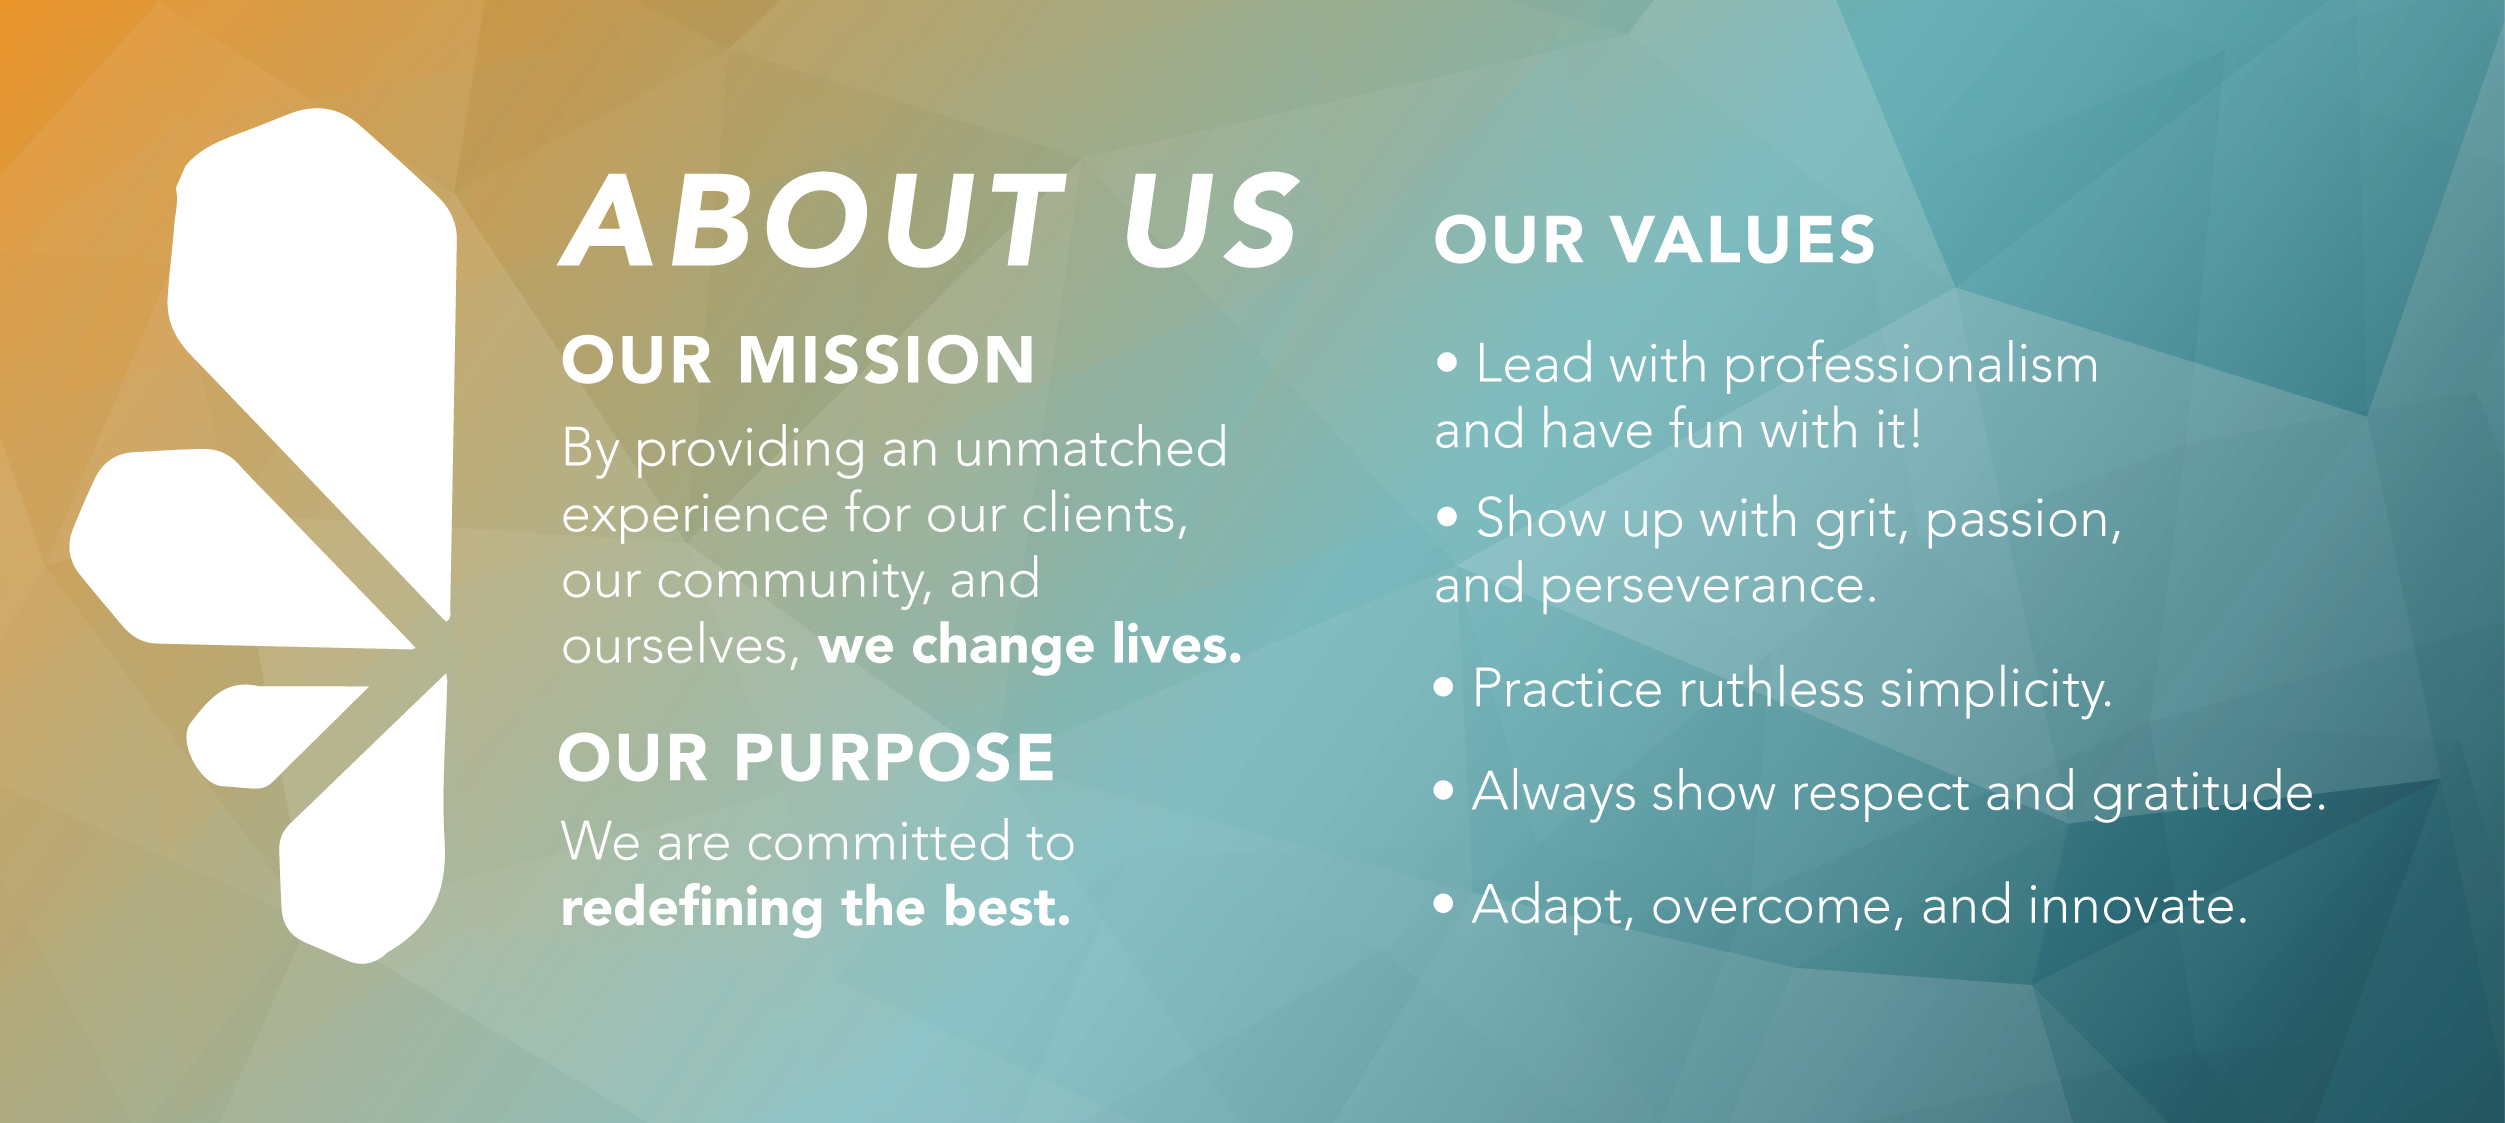 Avea About-Mission-Purpose-Values graphic 2018-10-15-05